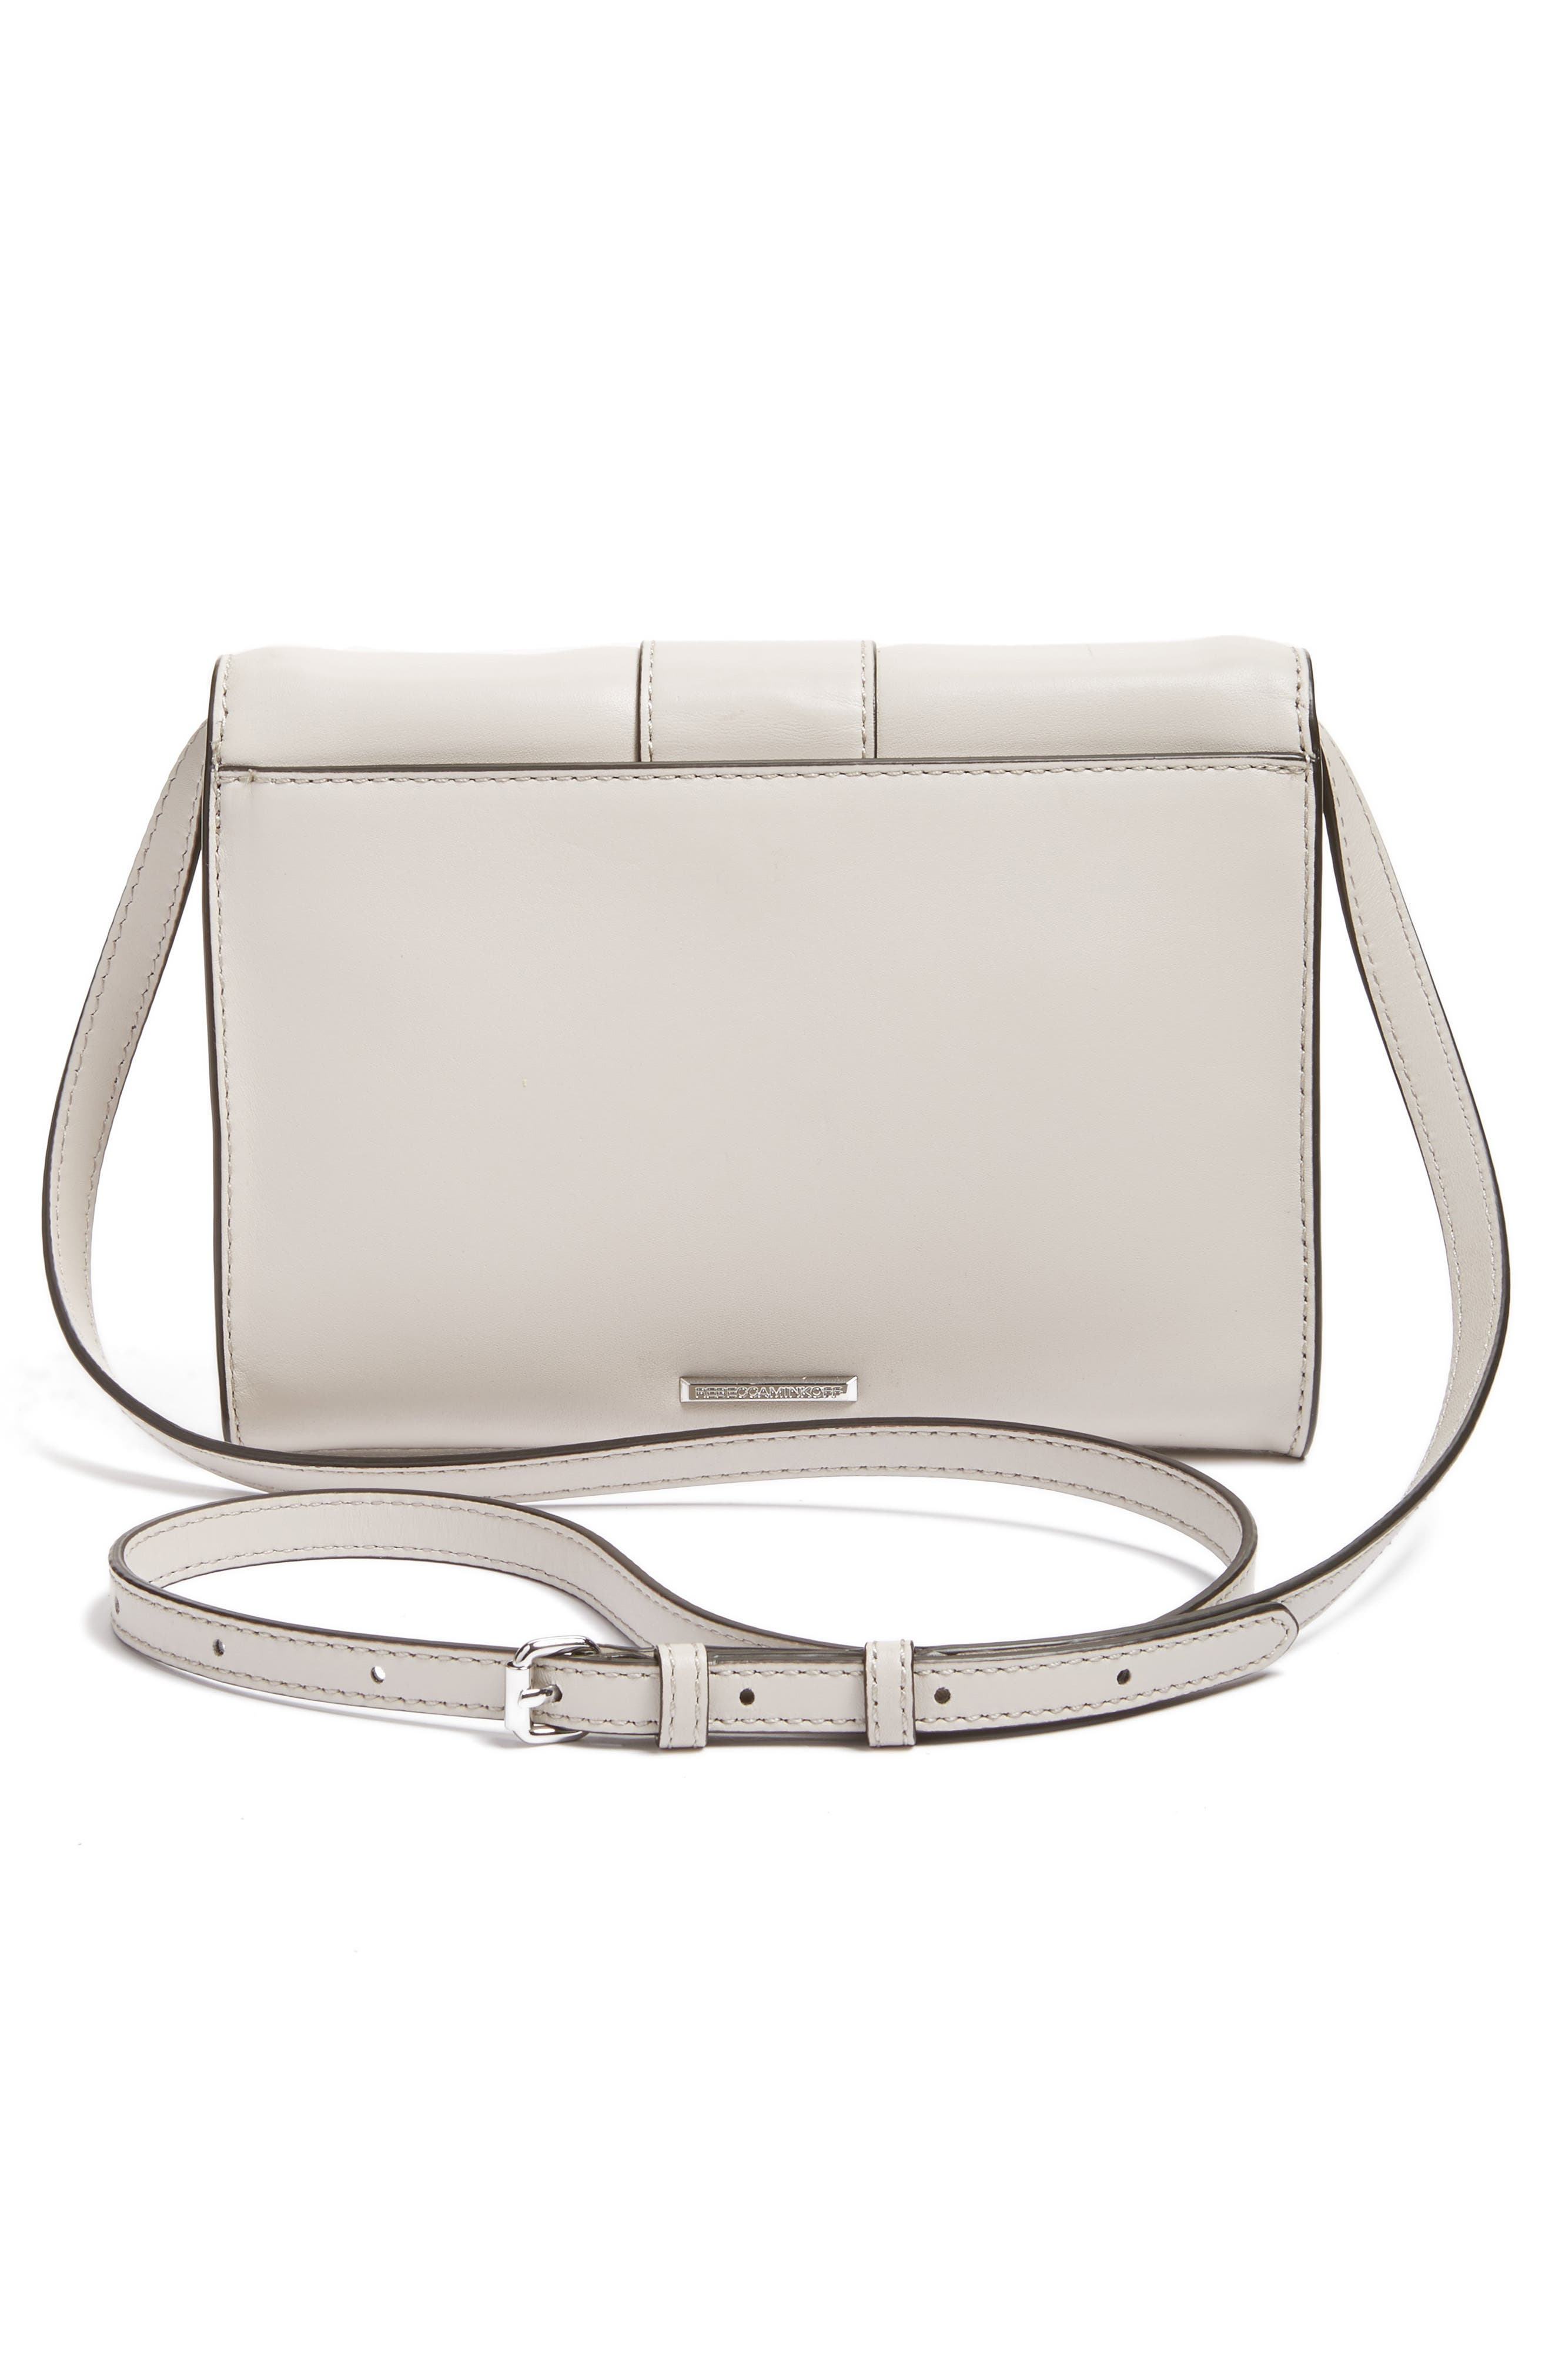 Hook Up Convertible Leather Clutch,                             Alternate thumbnail 4, color,                             269